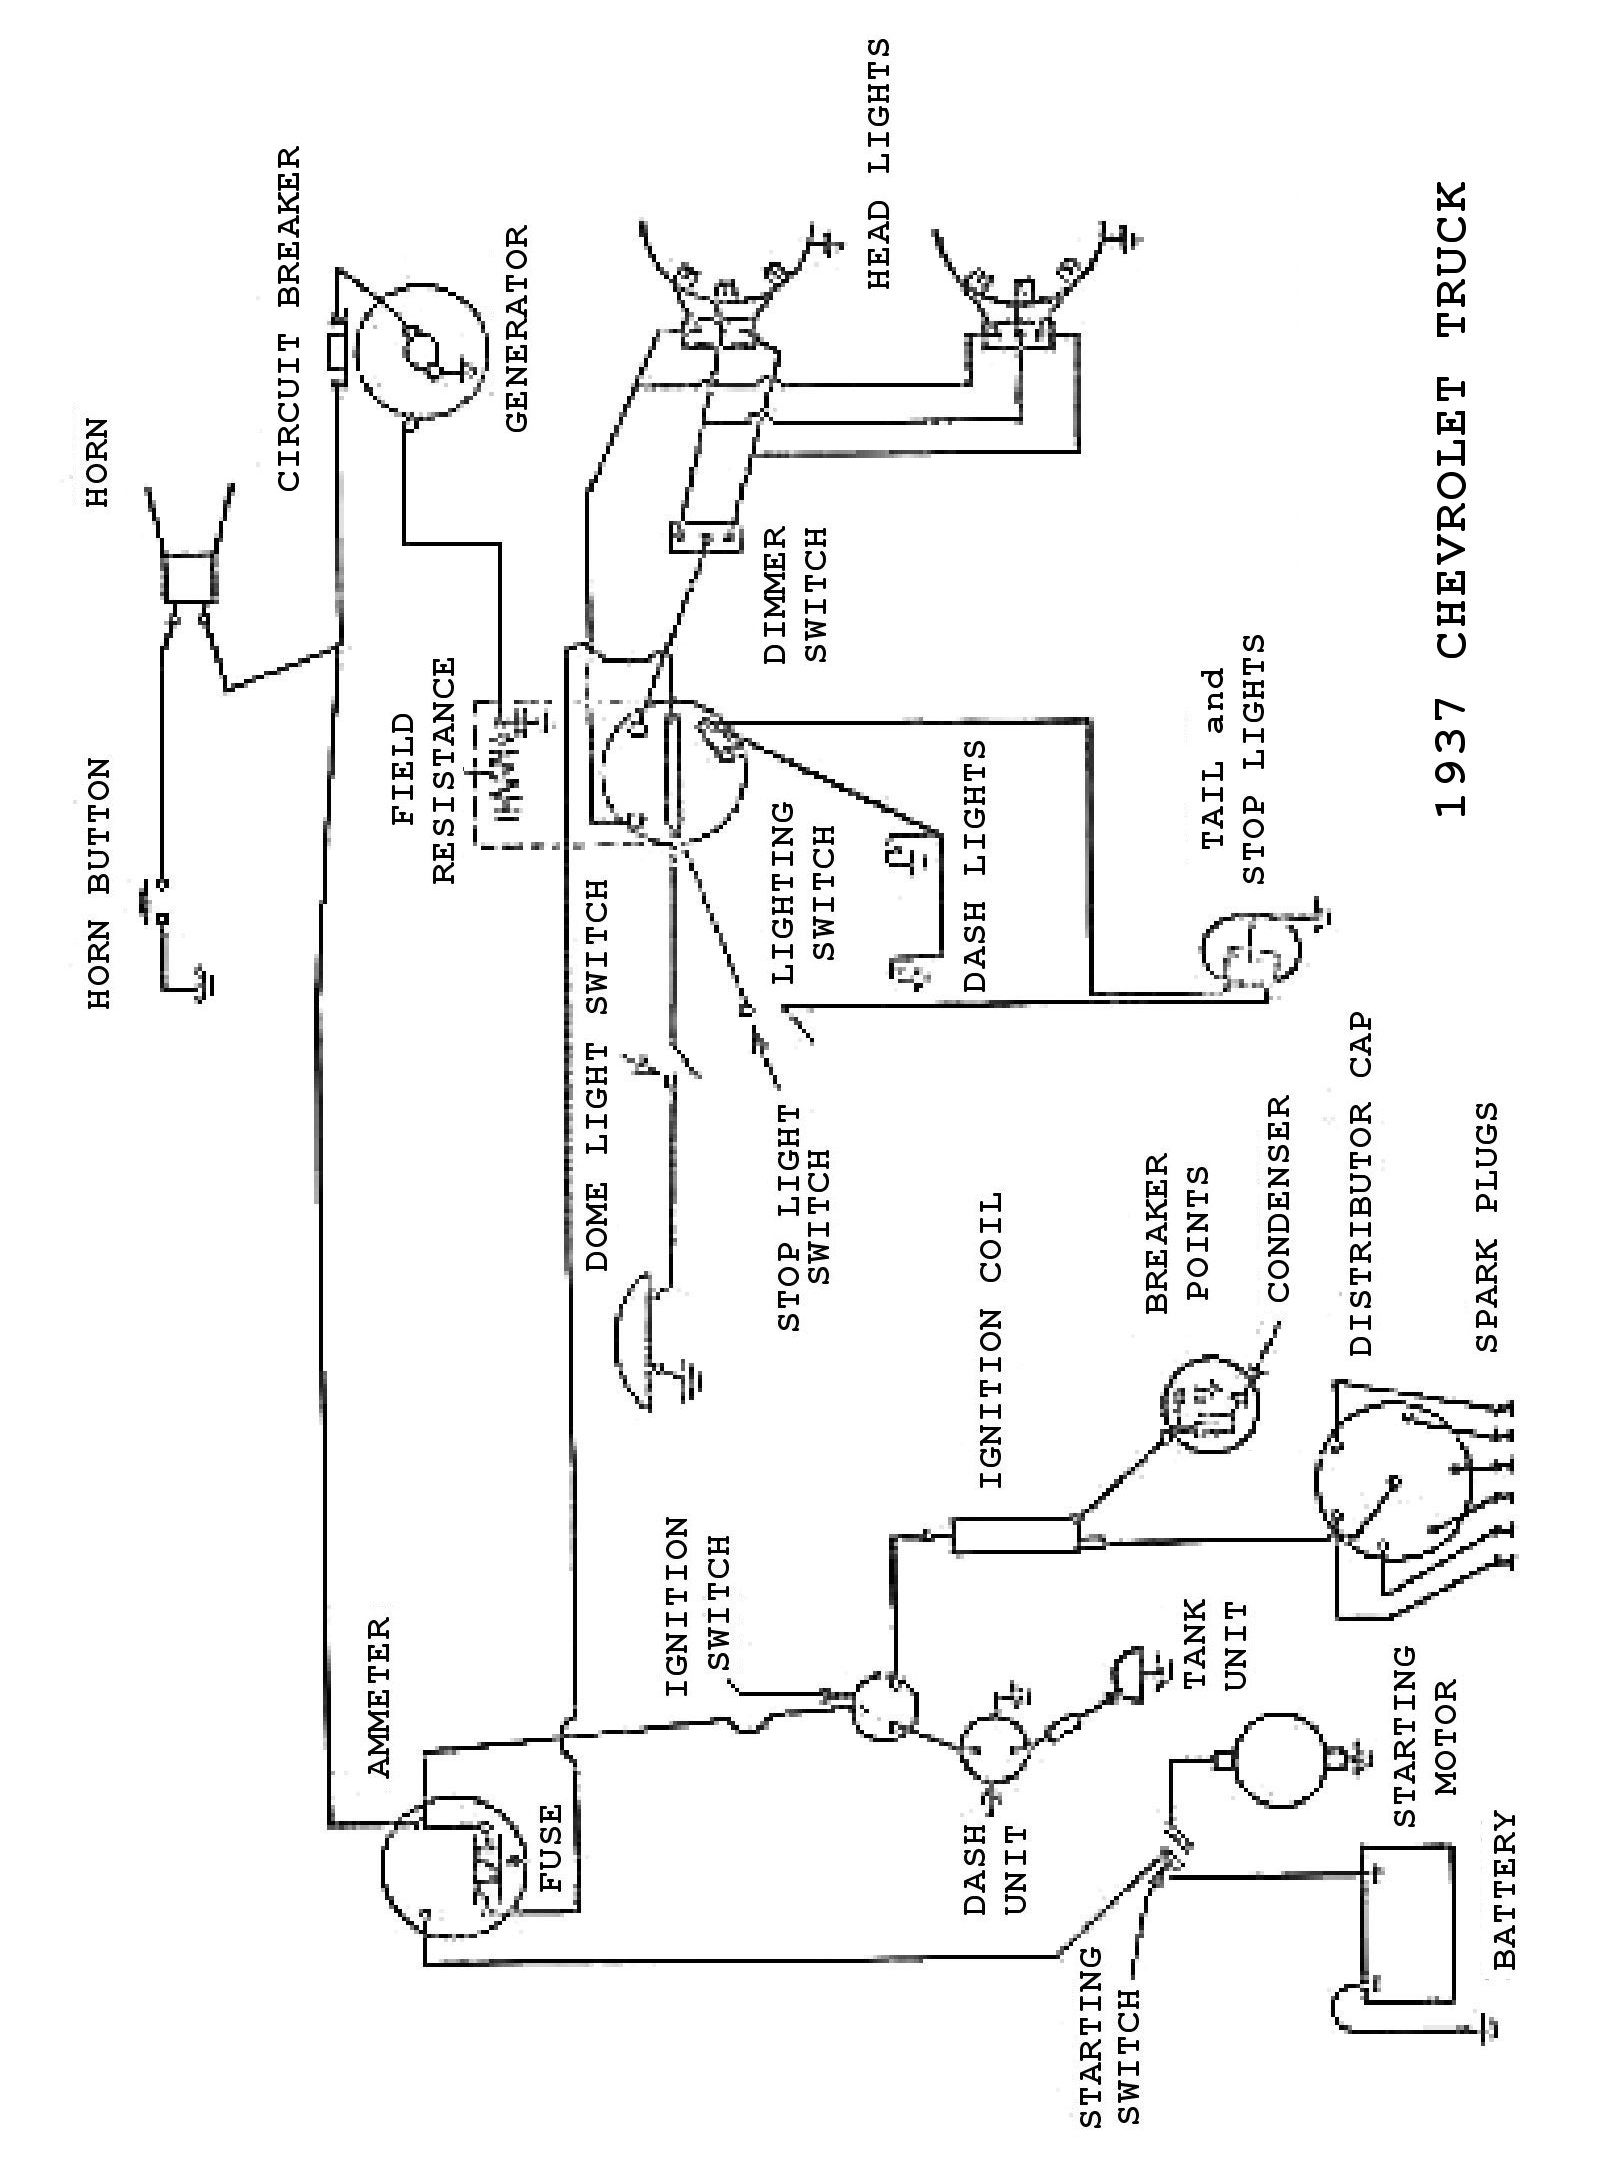 37truck chevy wiring diagrams chevy truck wiring diagram at fashall.co